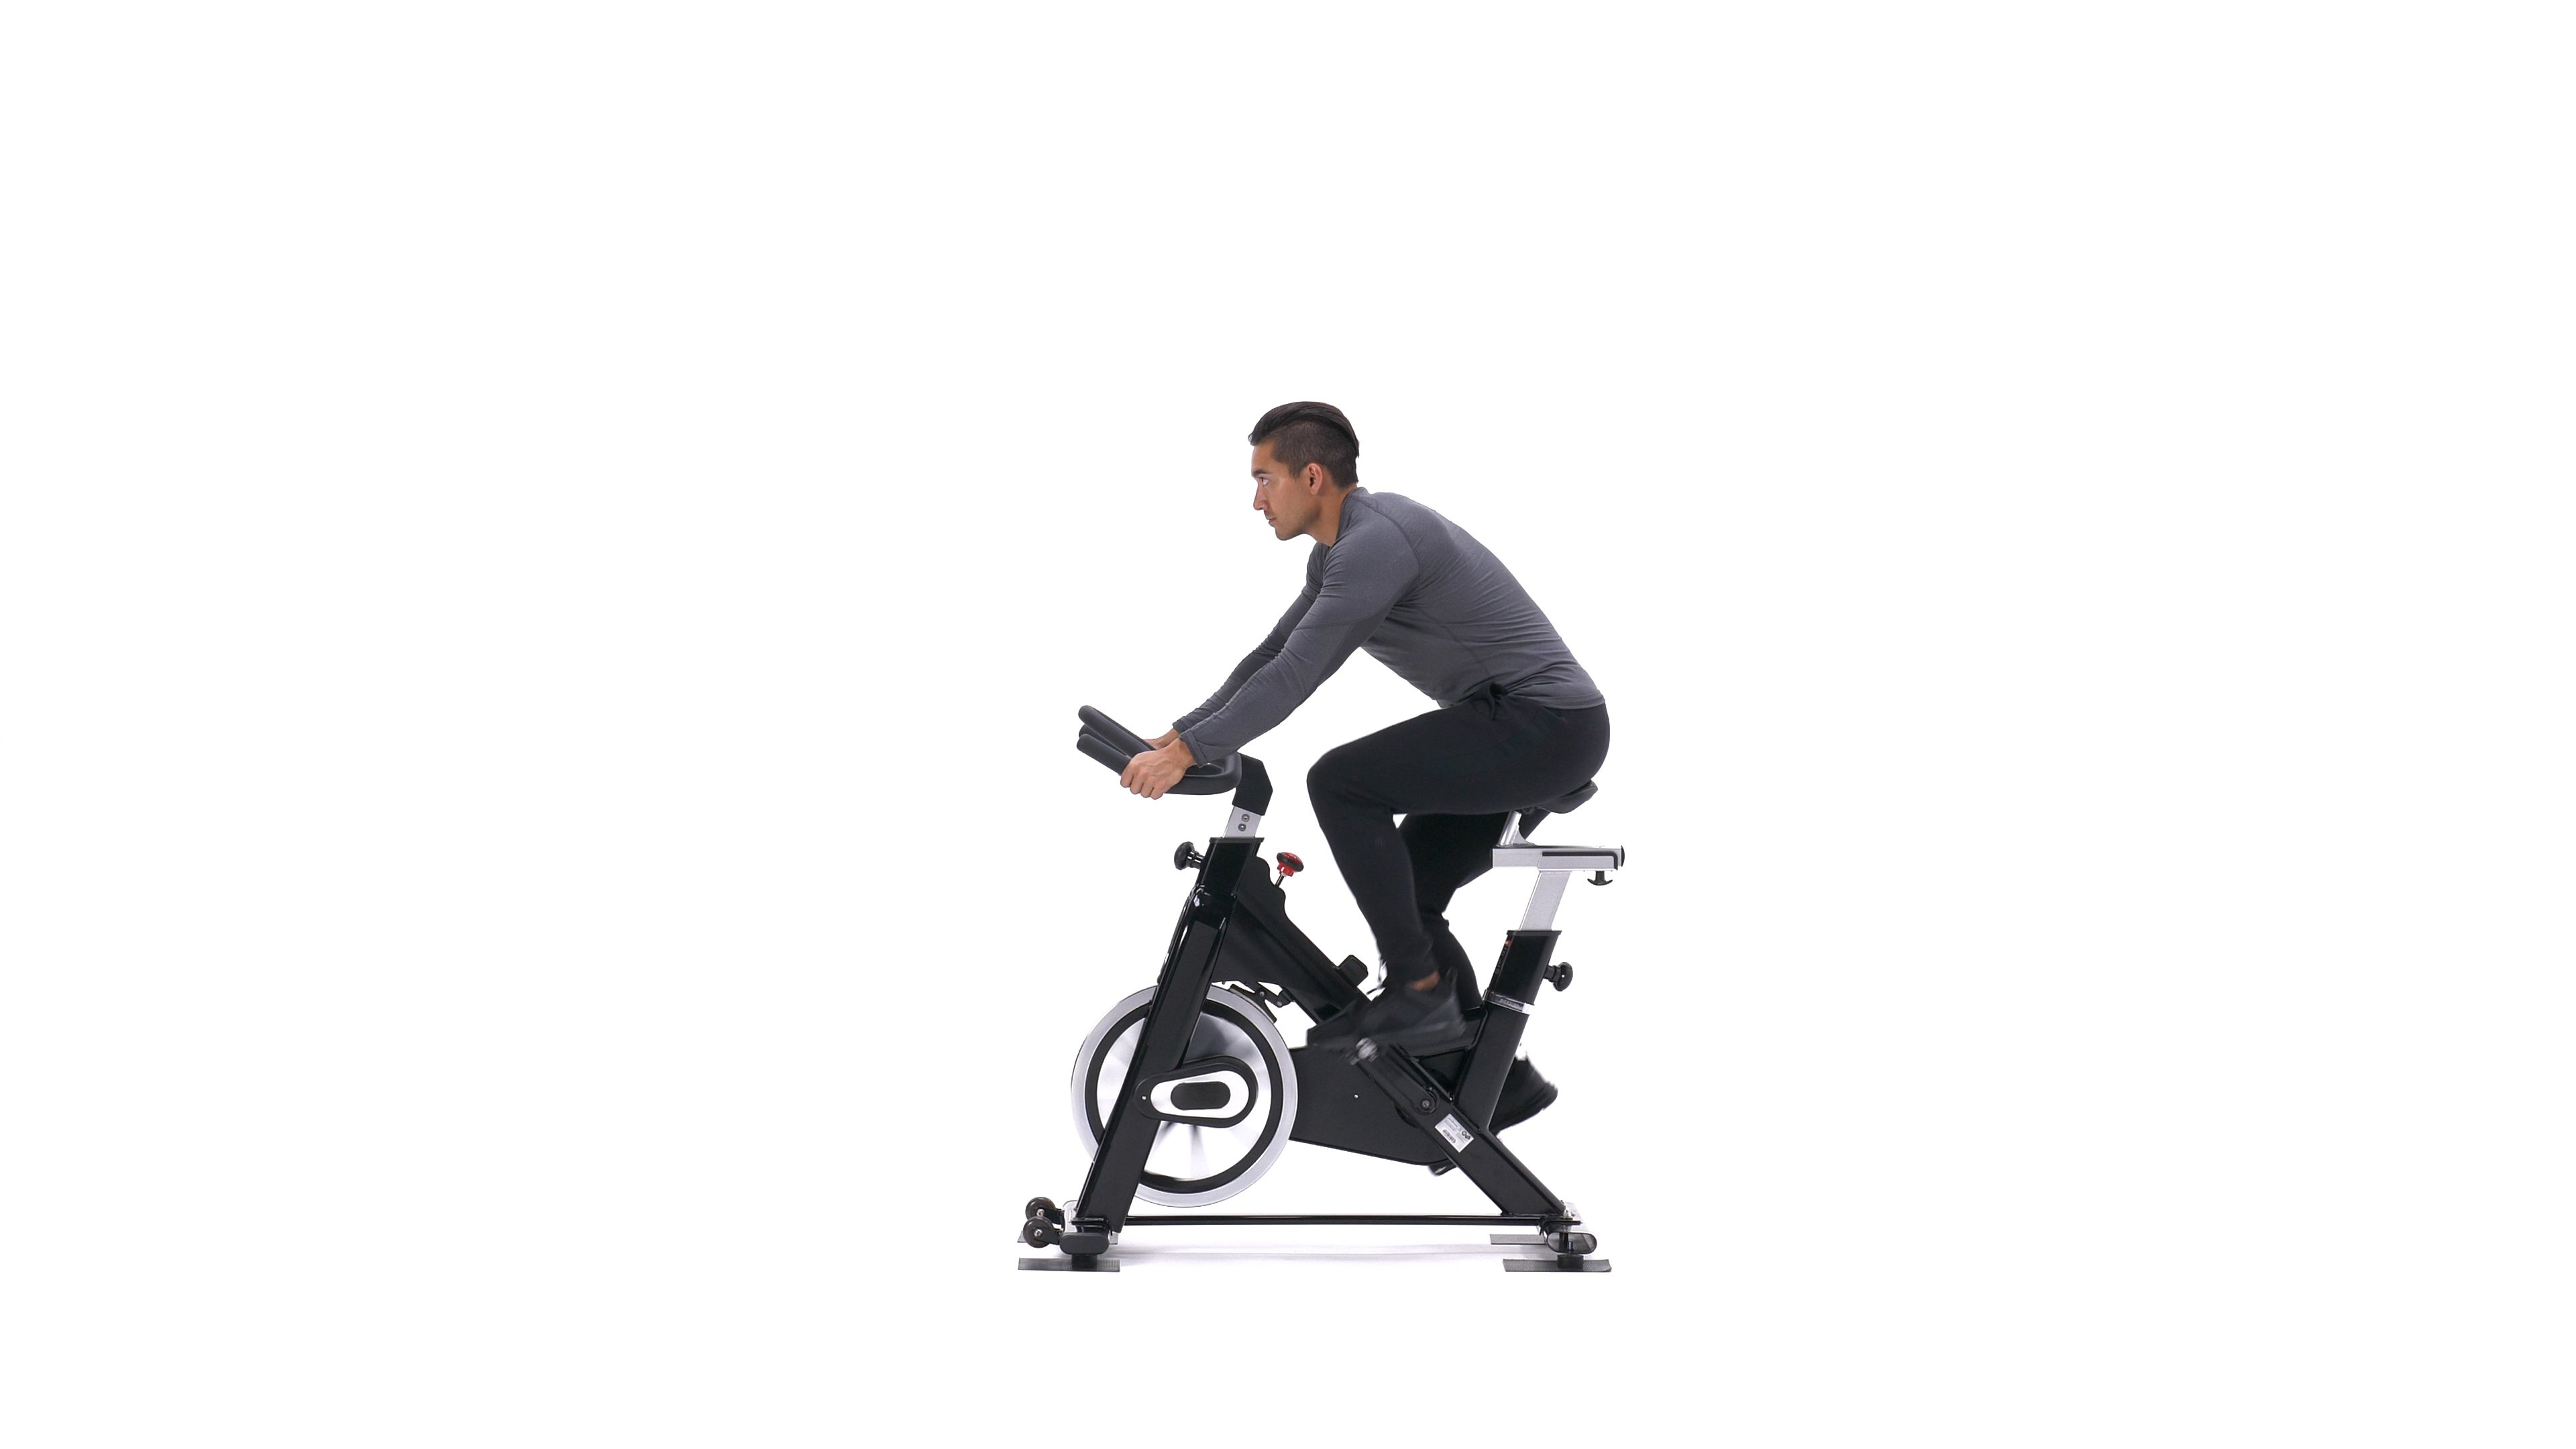 Stationary bike image